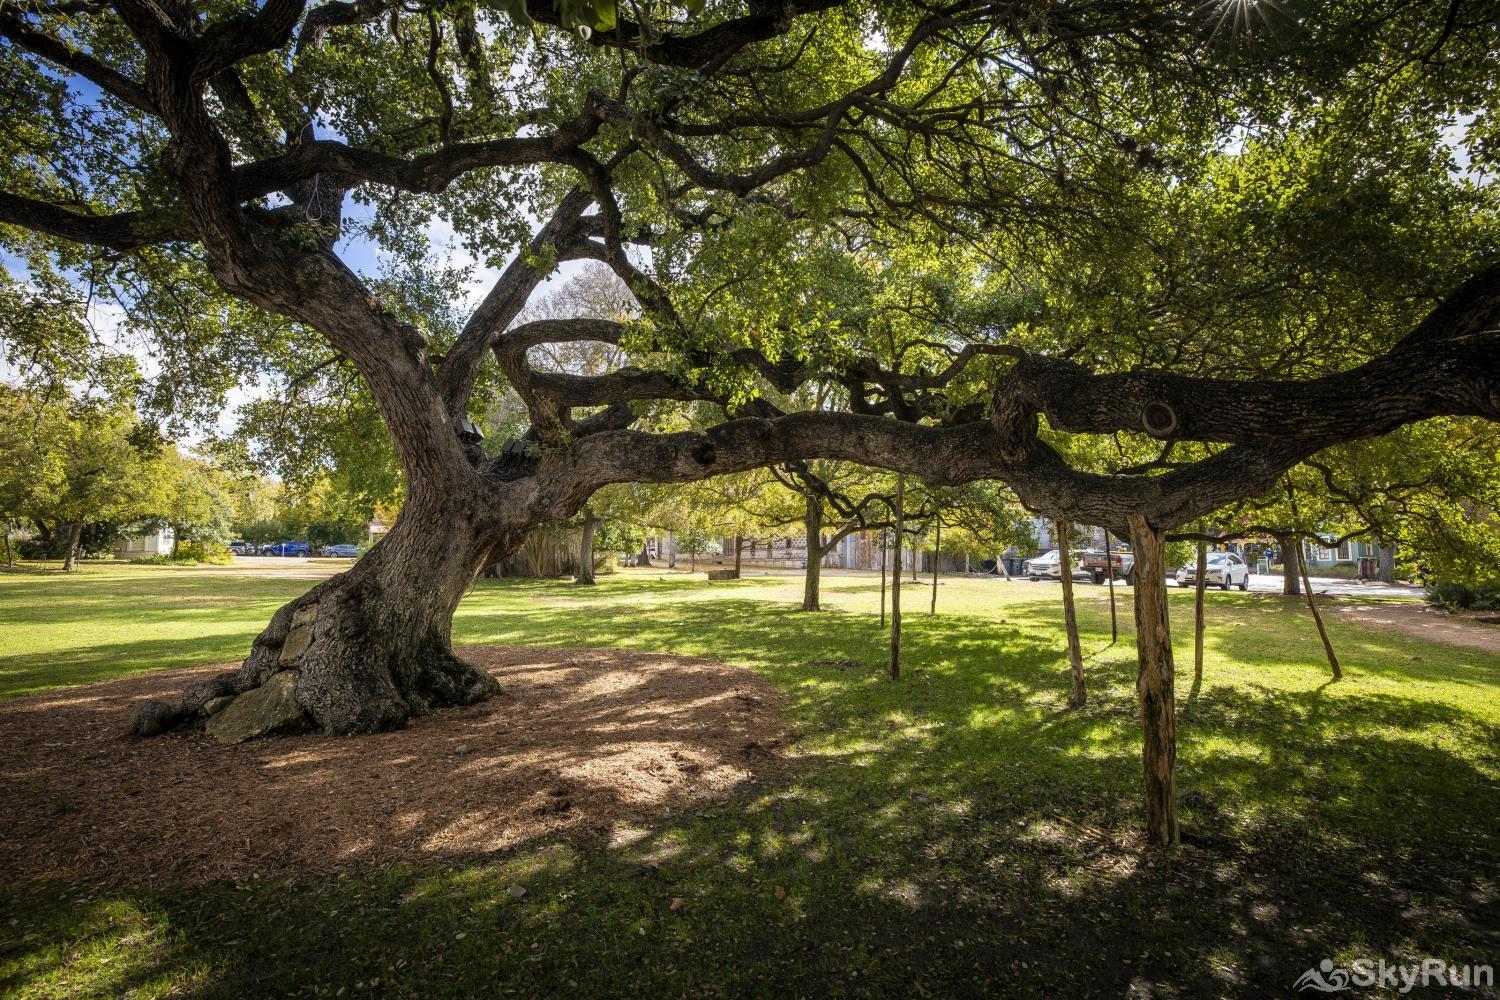 GRUENE GETAWAY Ancient oak trees scattered about